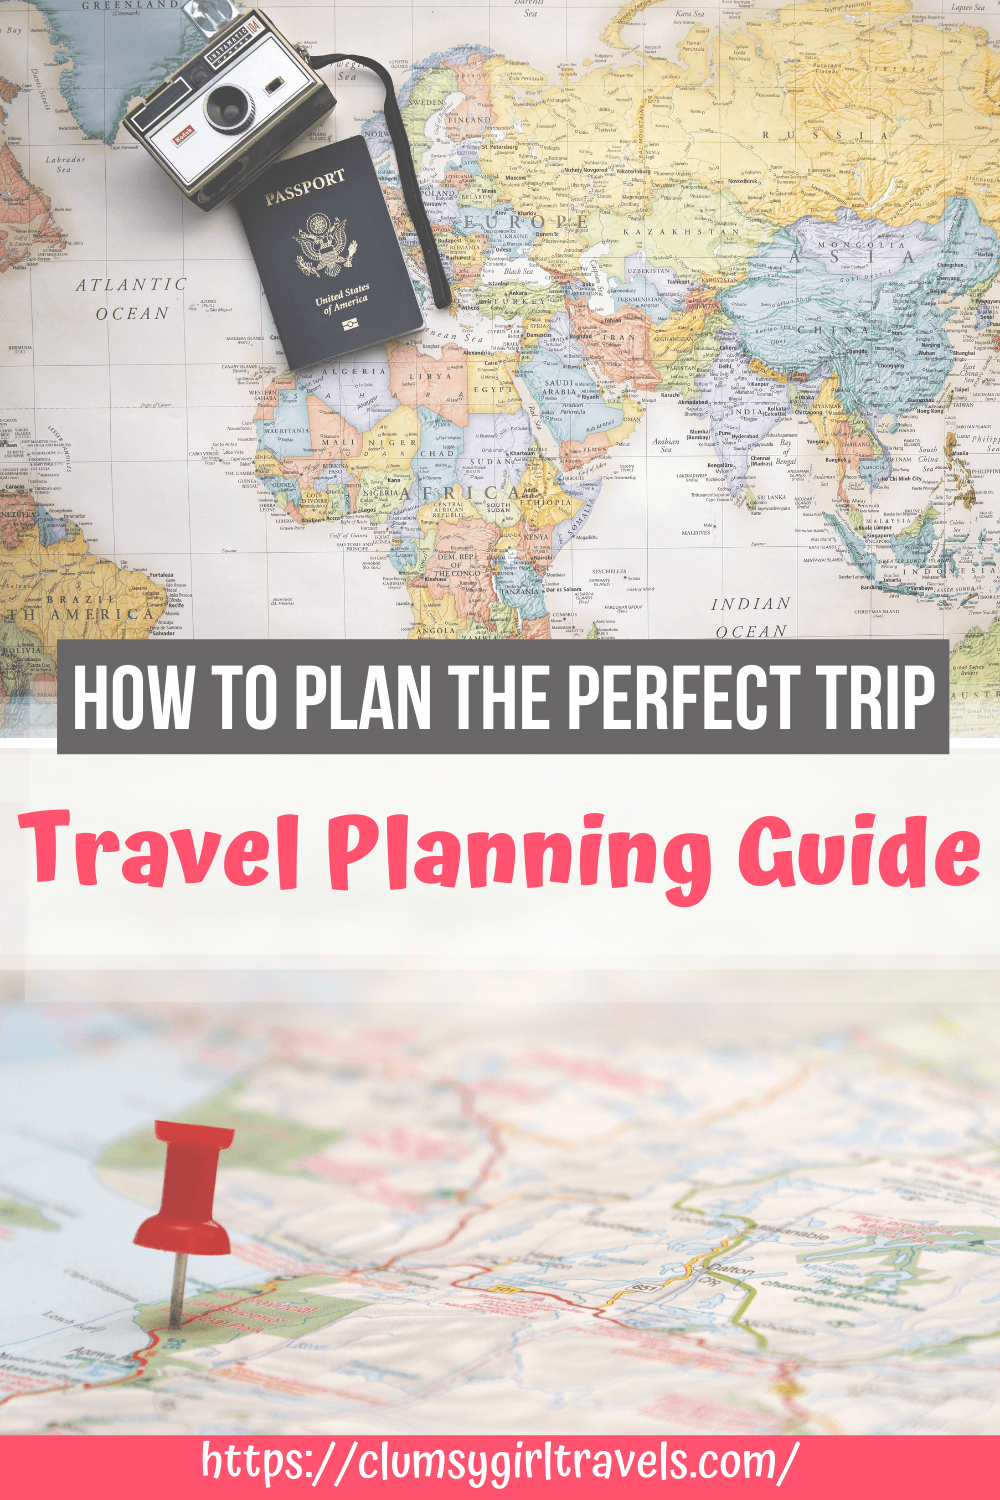 Travel planning can be overwhelming, but with this step by step trip planning guide, you will plan the perfect vacation in no time! #travelplanning #travelplanner #tripplanner